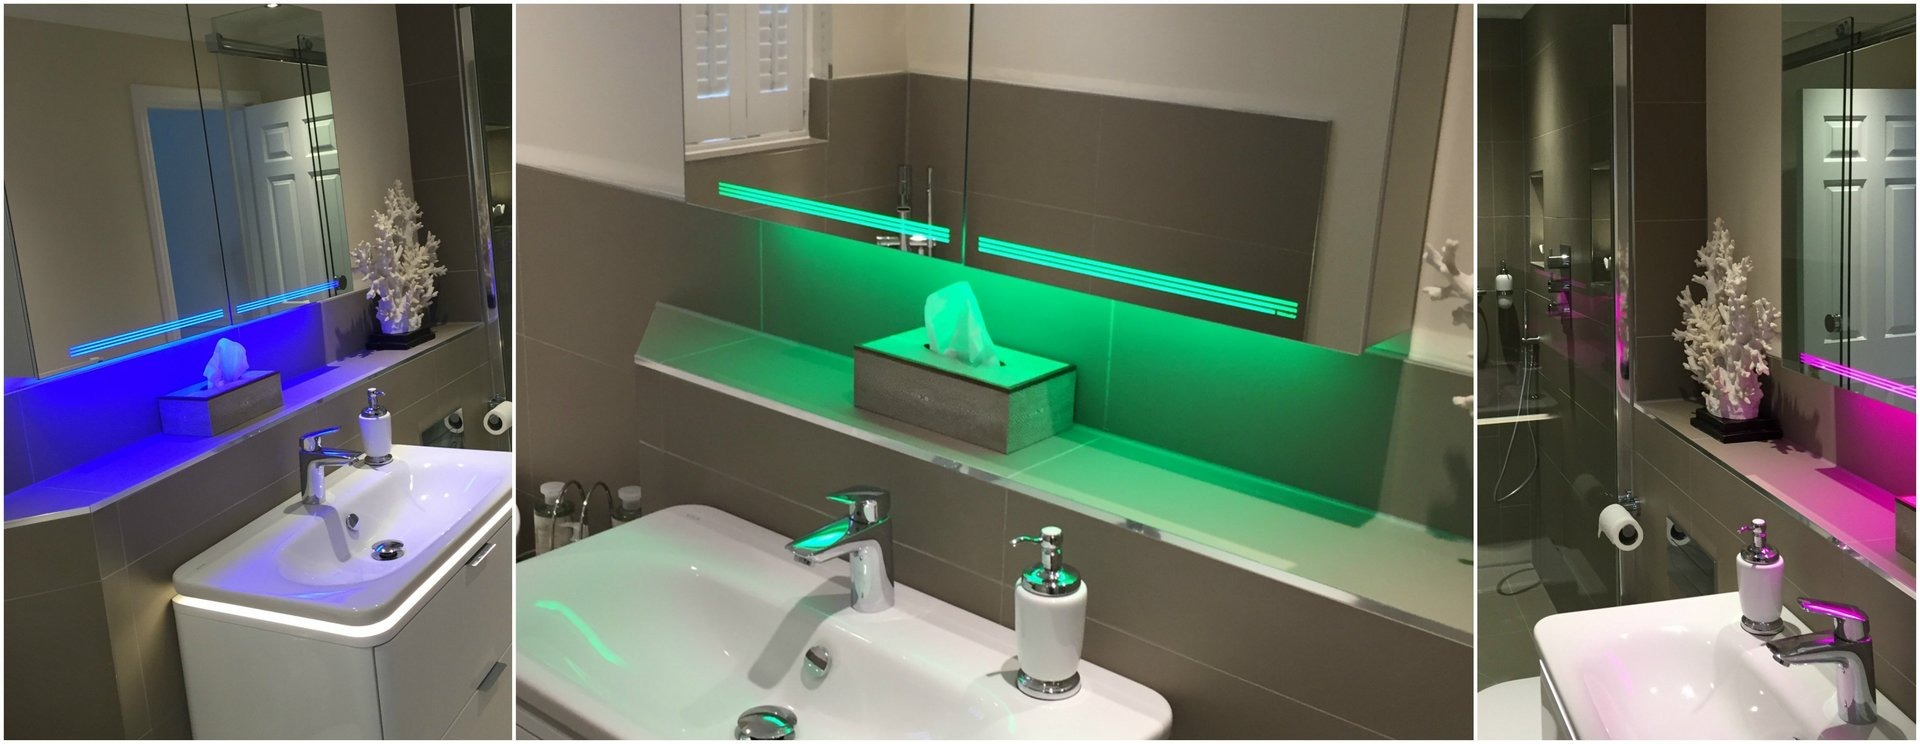 Light up your bathroom lifestyle floor lighting can improve your bathroom dramatically making the floor space look more spacious and the whole bathroom lighter and clearer mozeypictures Choice Image